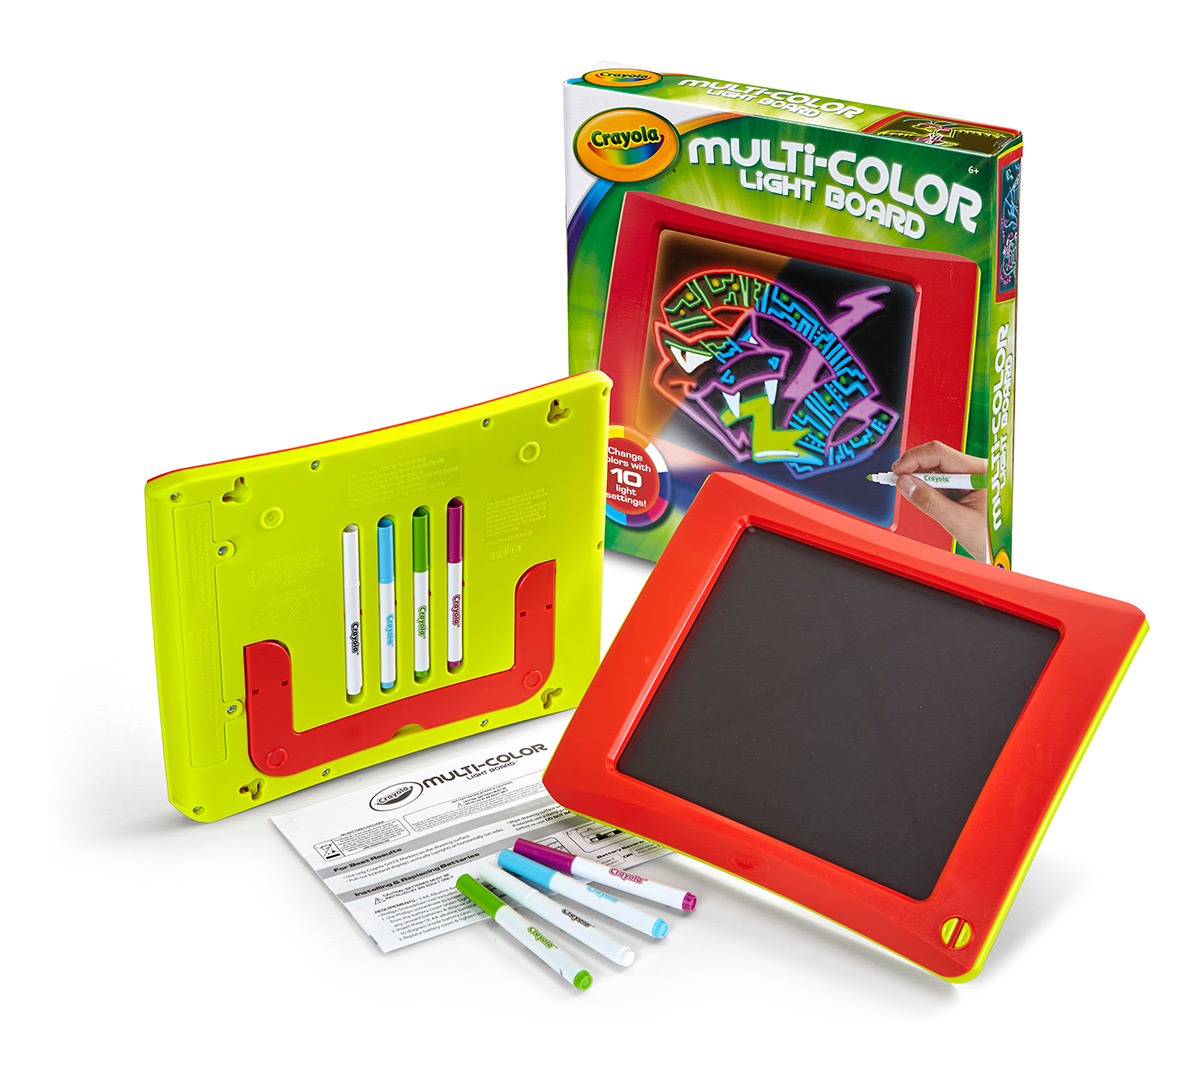 Download Multi-Color Light Board | Crayola